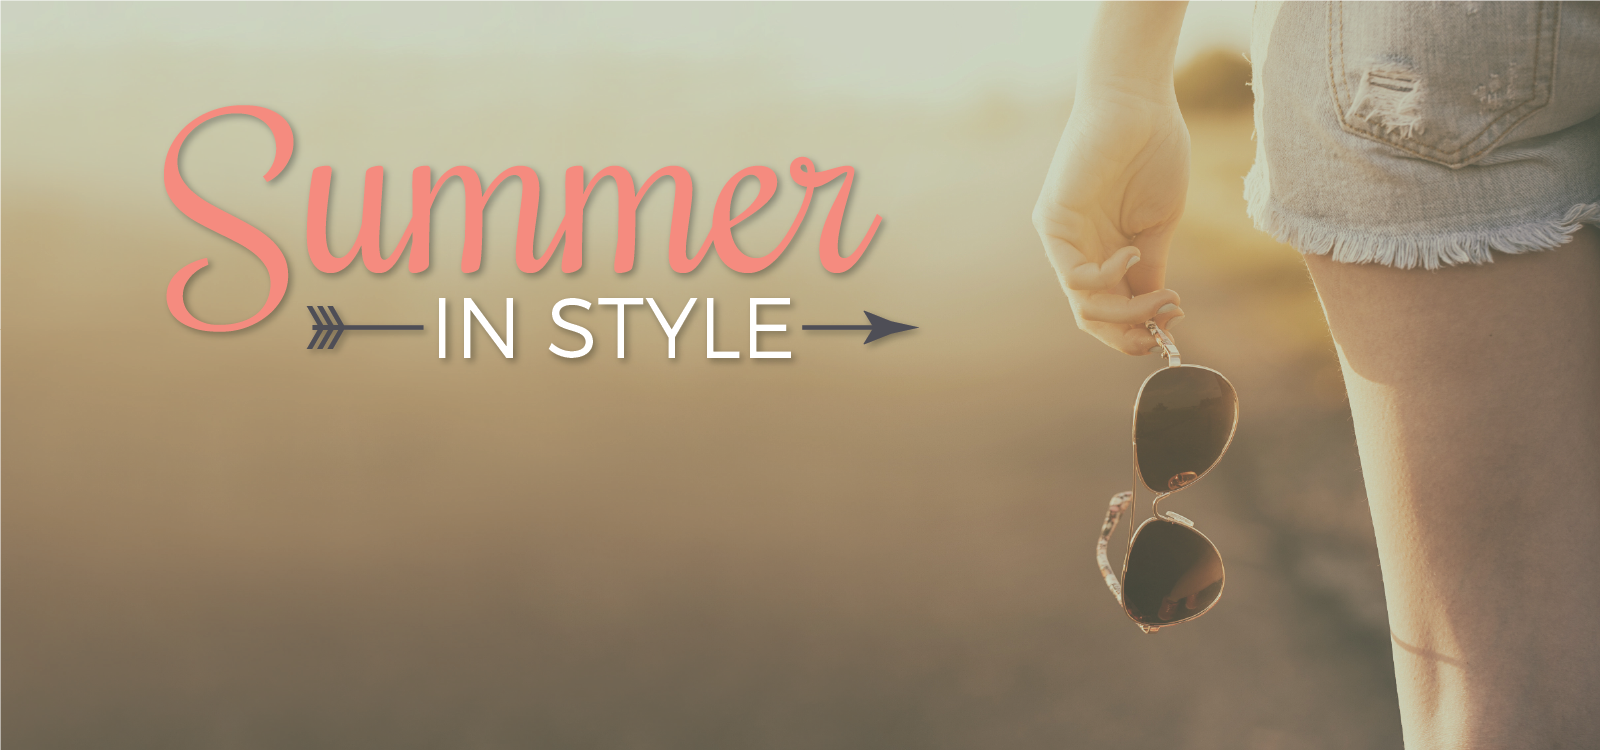 SummerInStyle_Webslide_1600x750_Sunglasses_0316